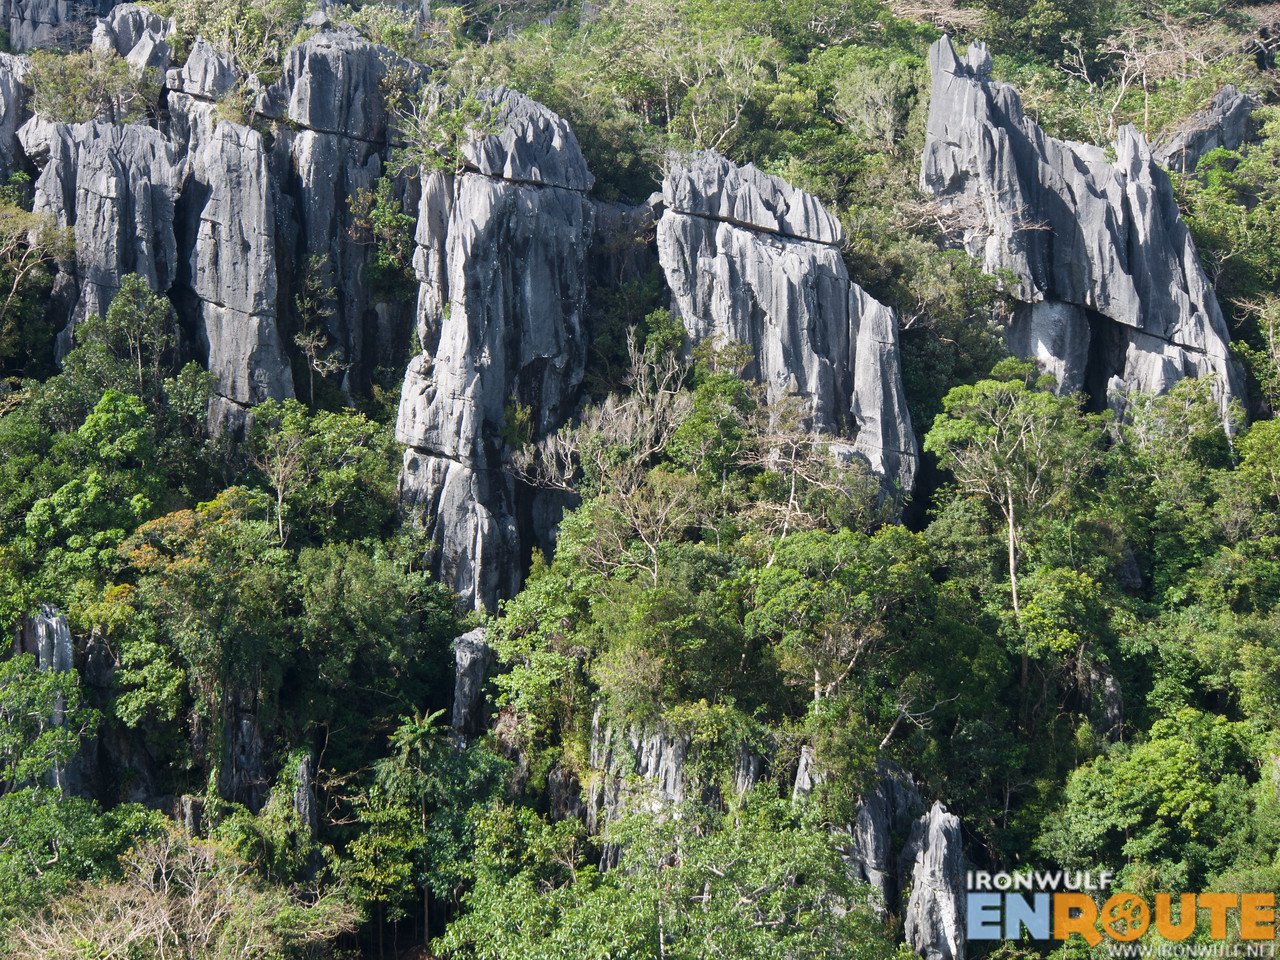 The stunning limestone karst formations at the Masungi Georeserve